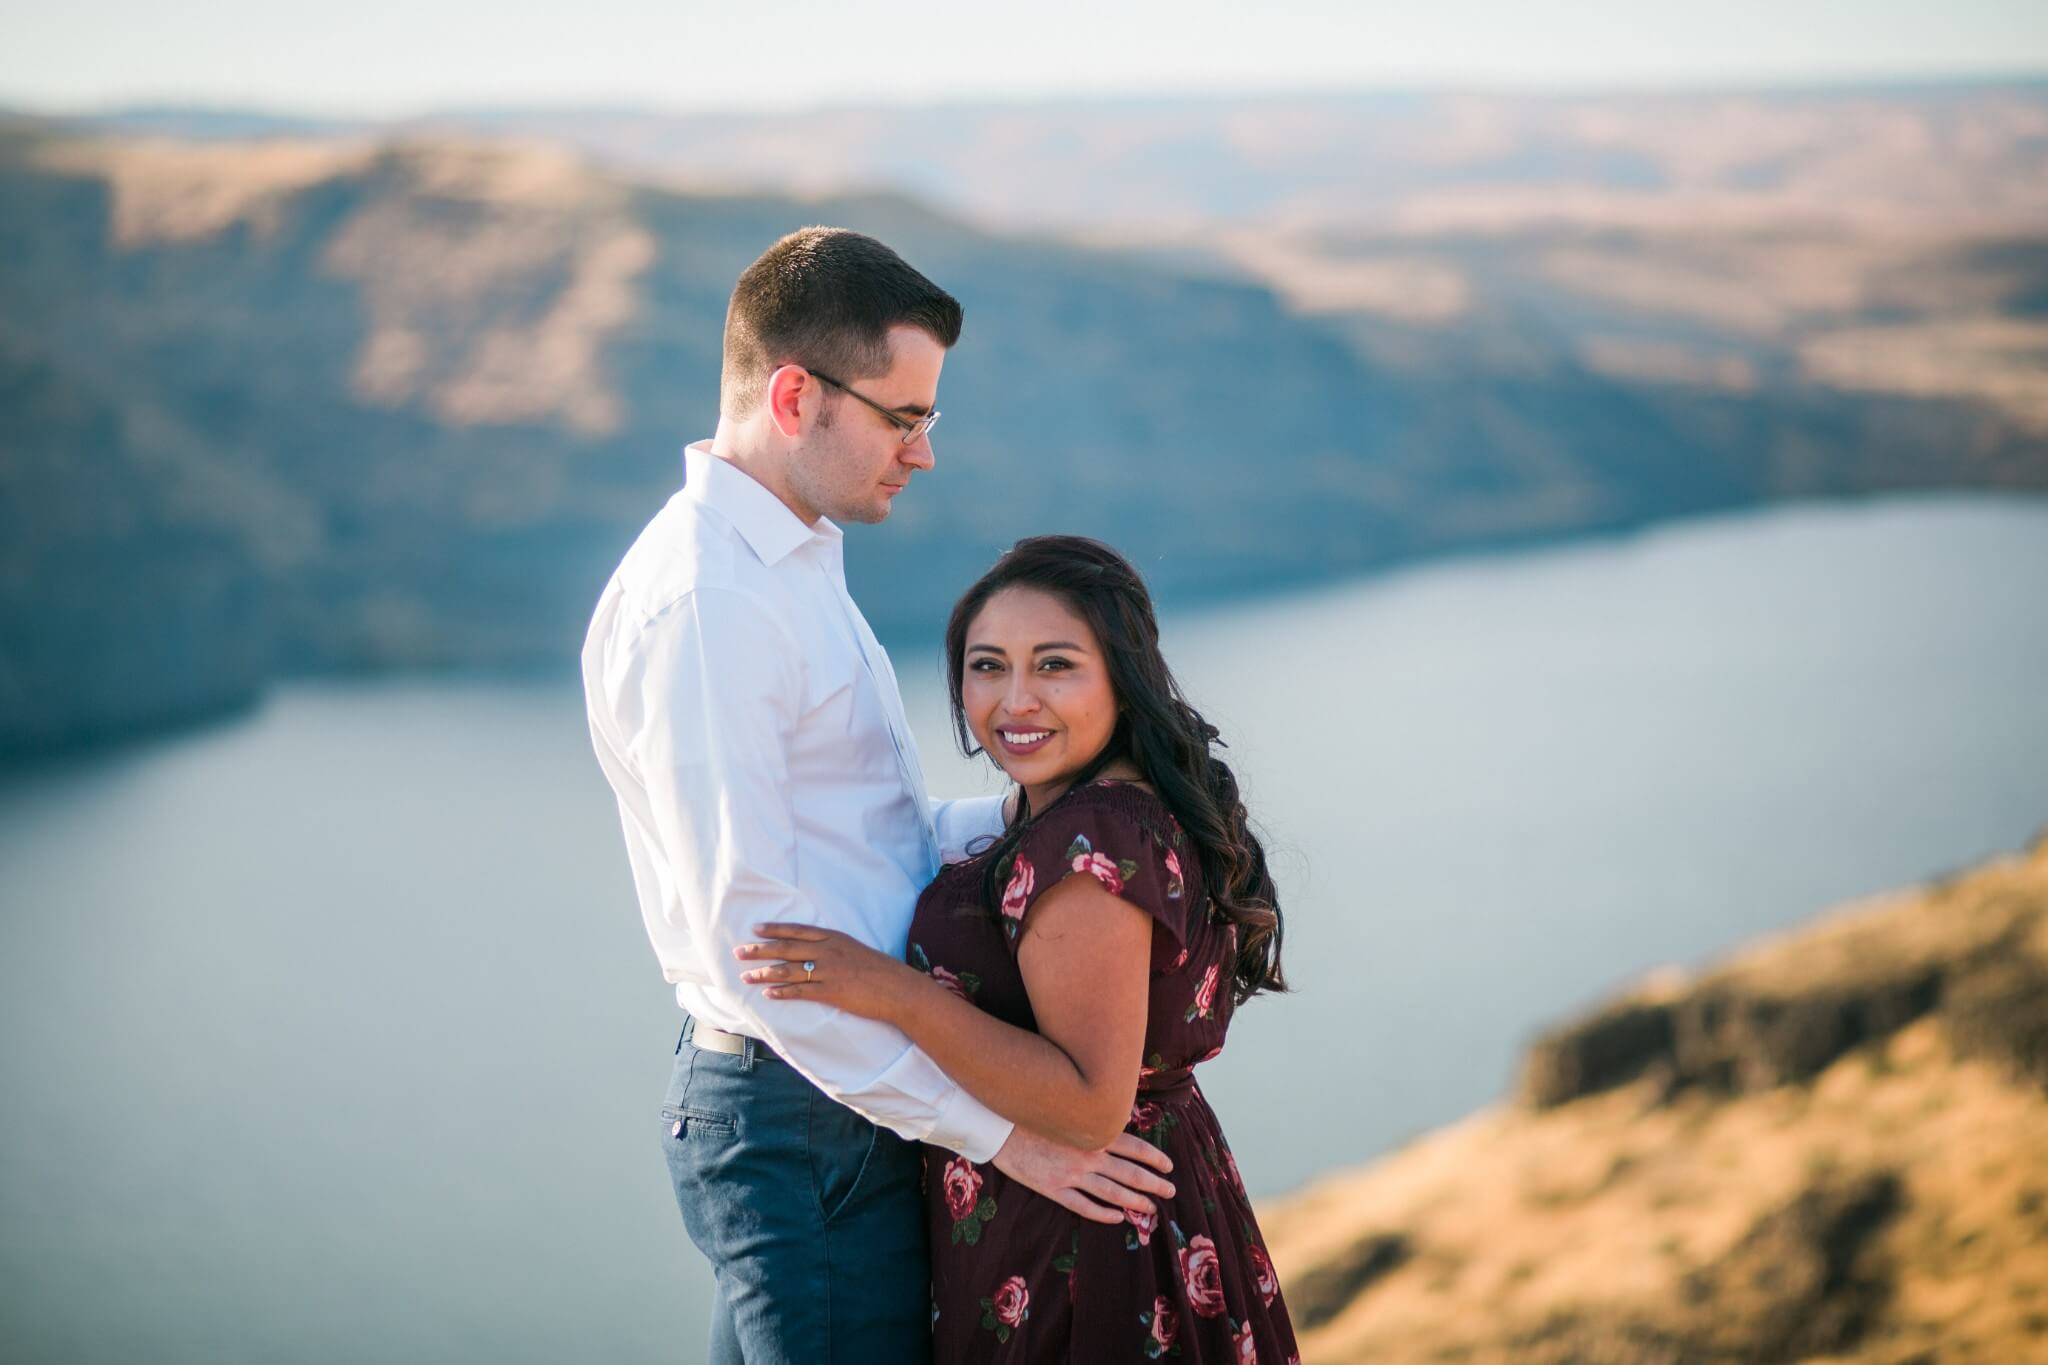 Lesly & Michael Vantage Engagement by Bill Weisgerber Spokane Photographer (12 of 71).jpg